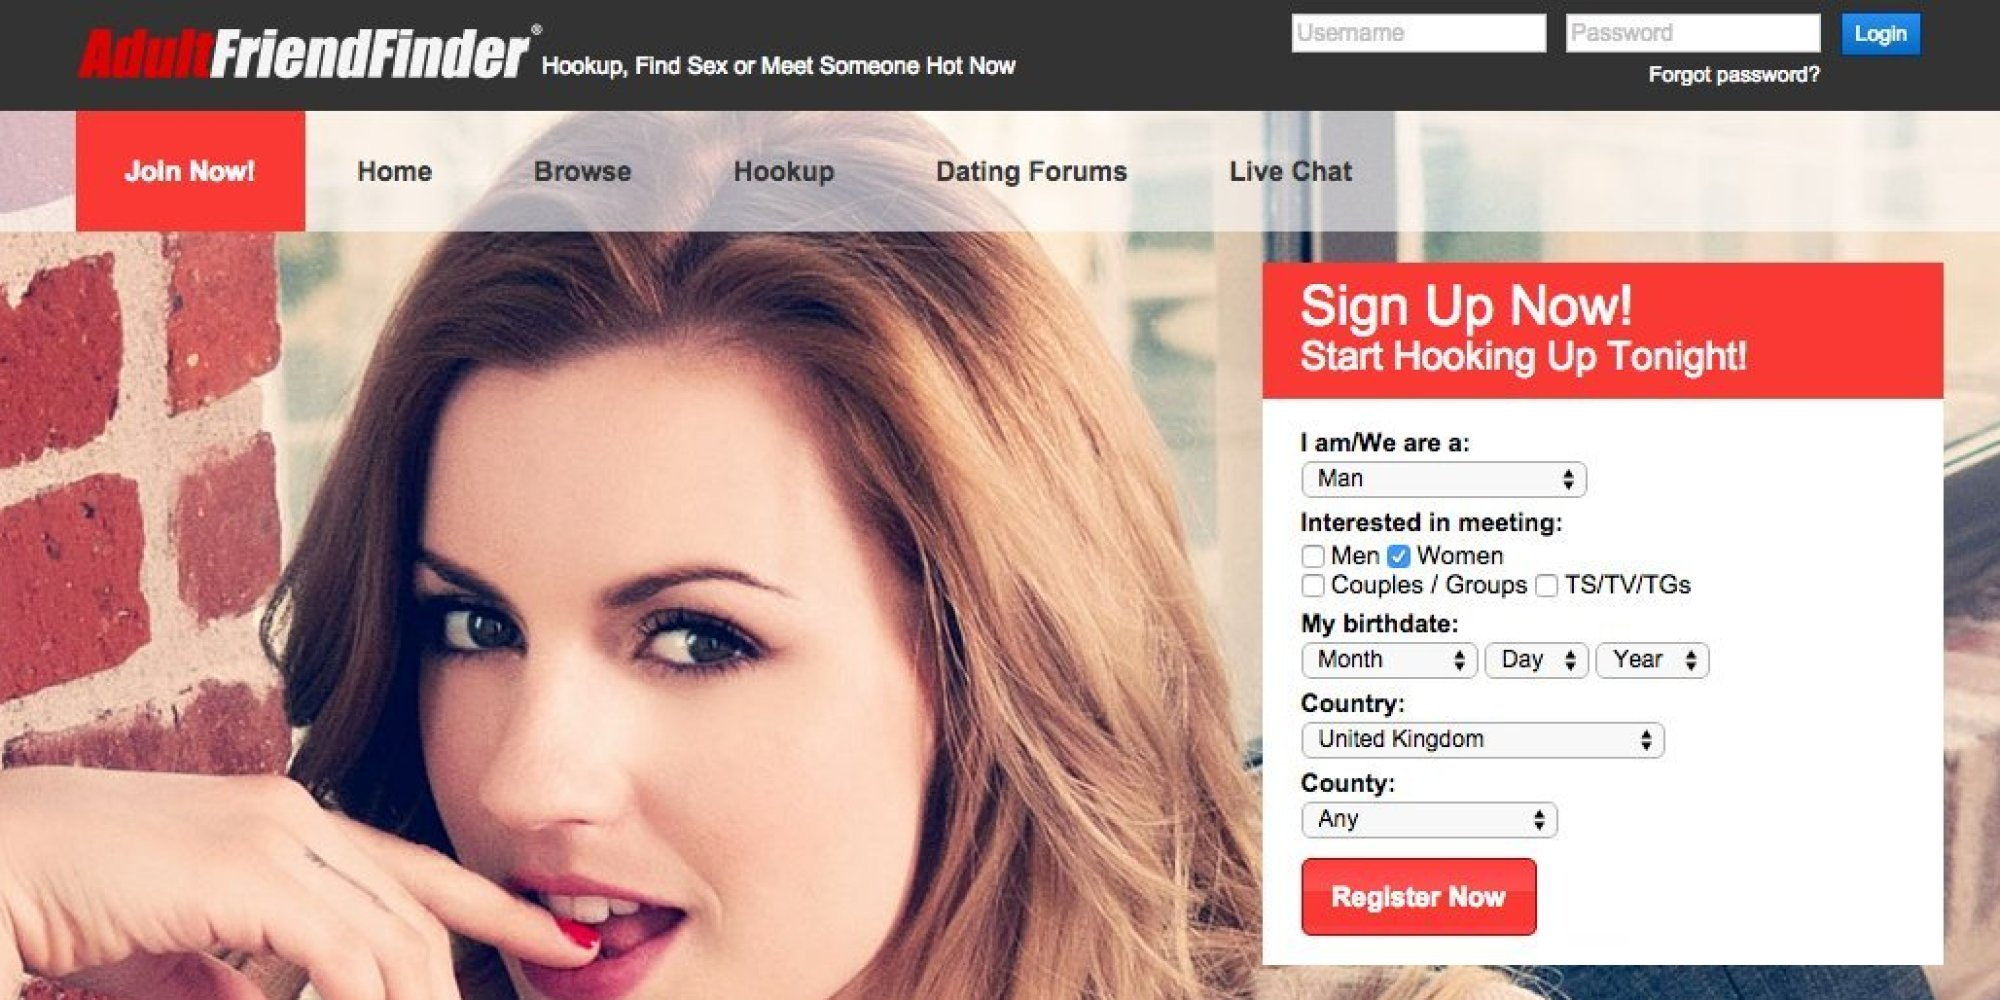 How to hack international dating sites